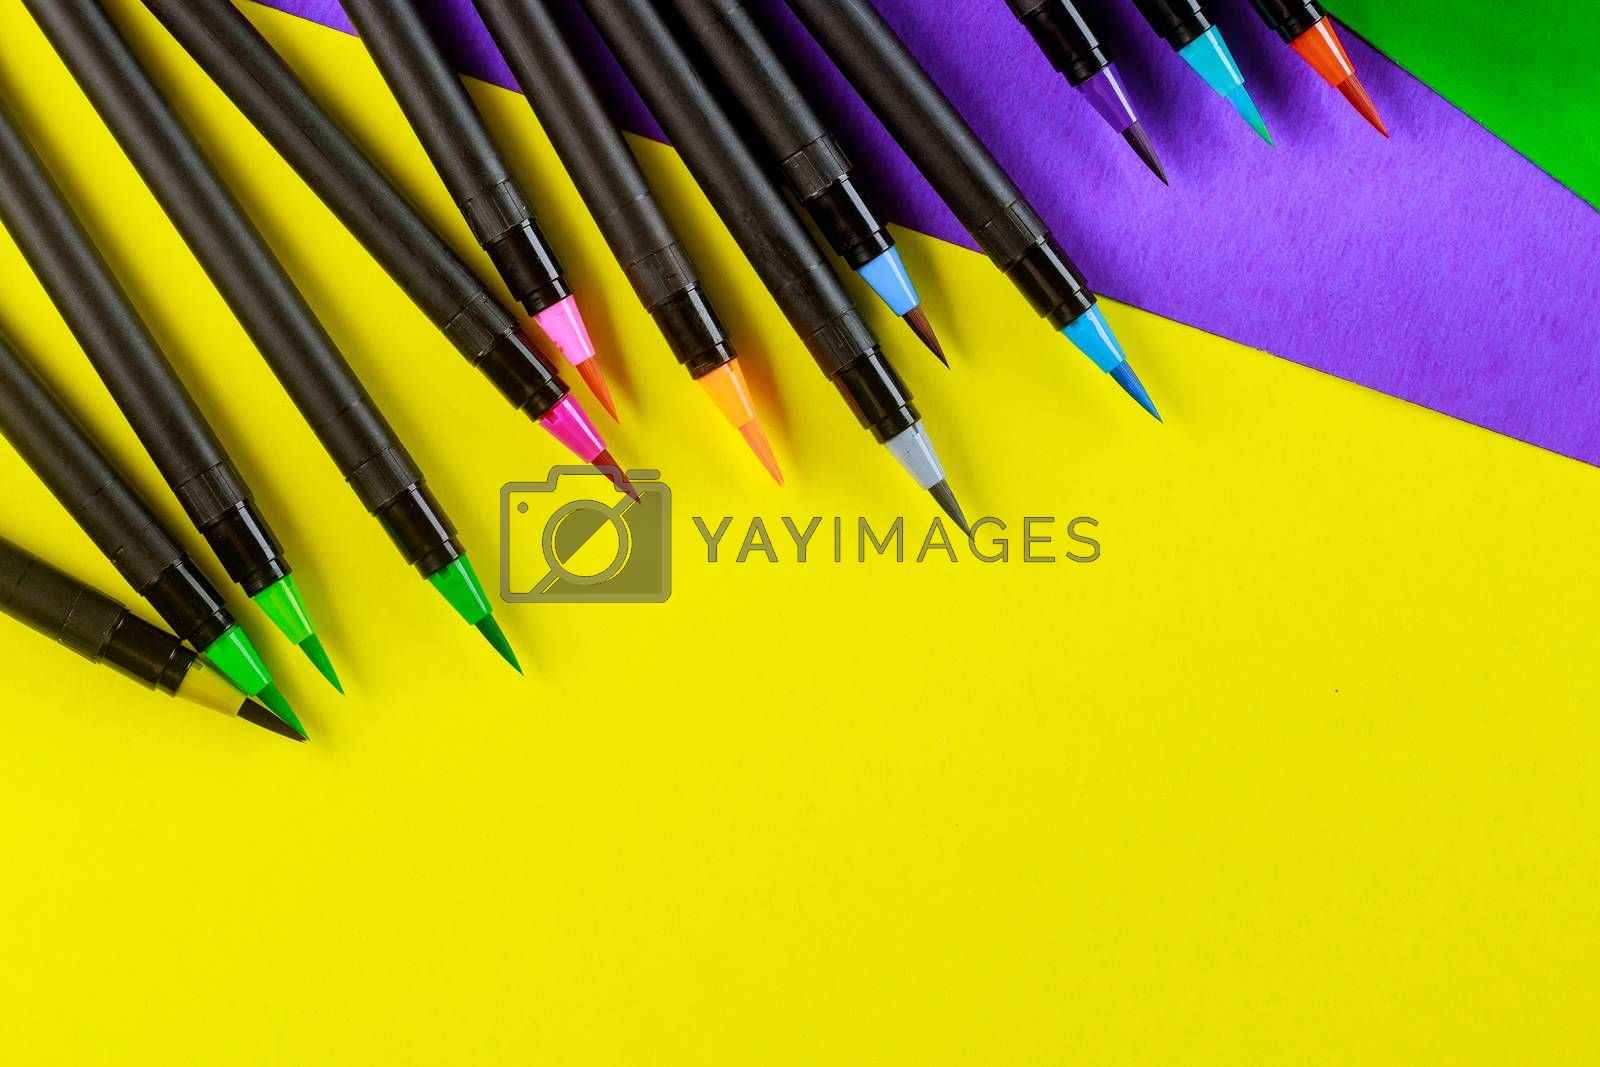 Artist watercolor calligraphy brush of drawing supplies by Ungvar